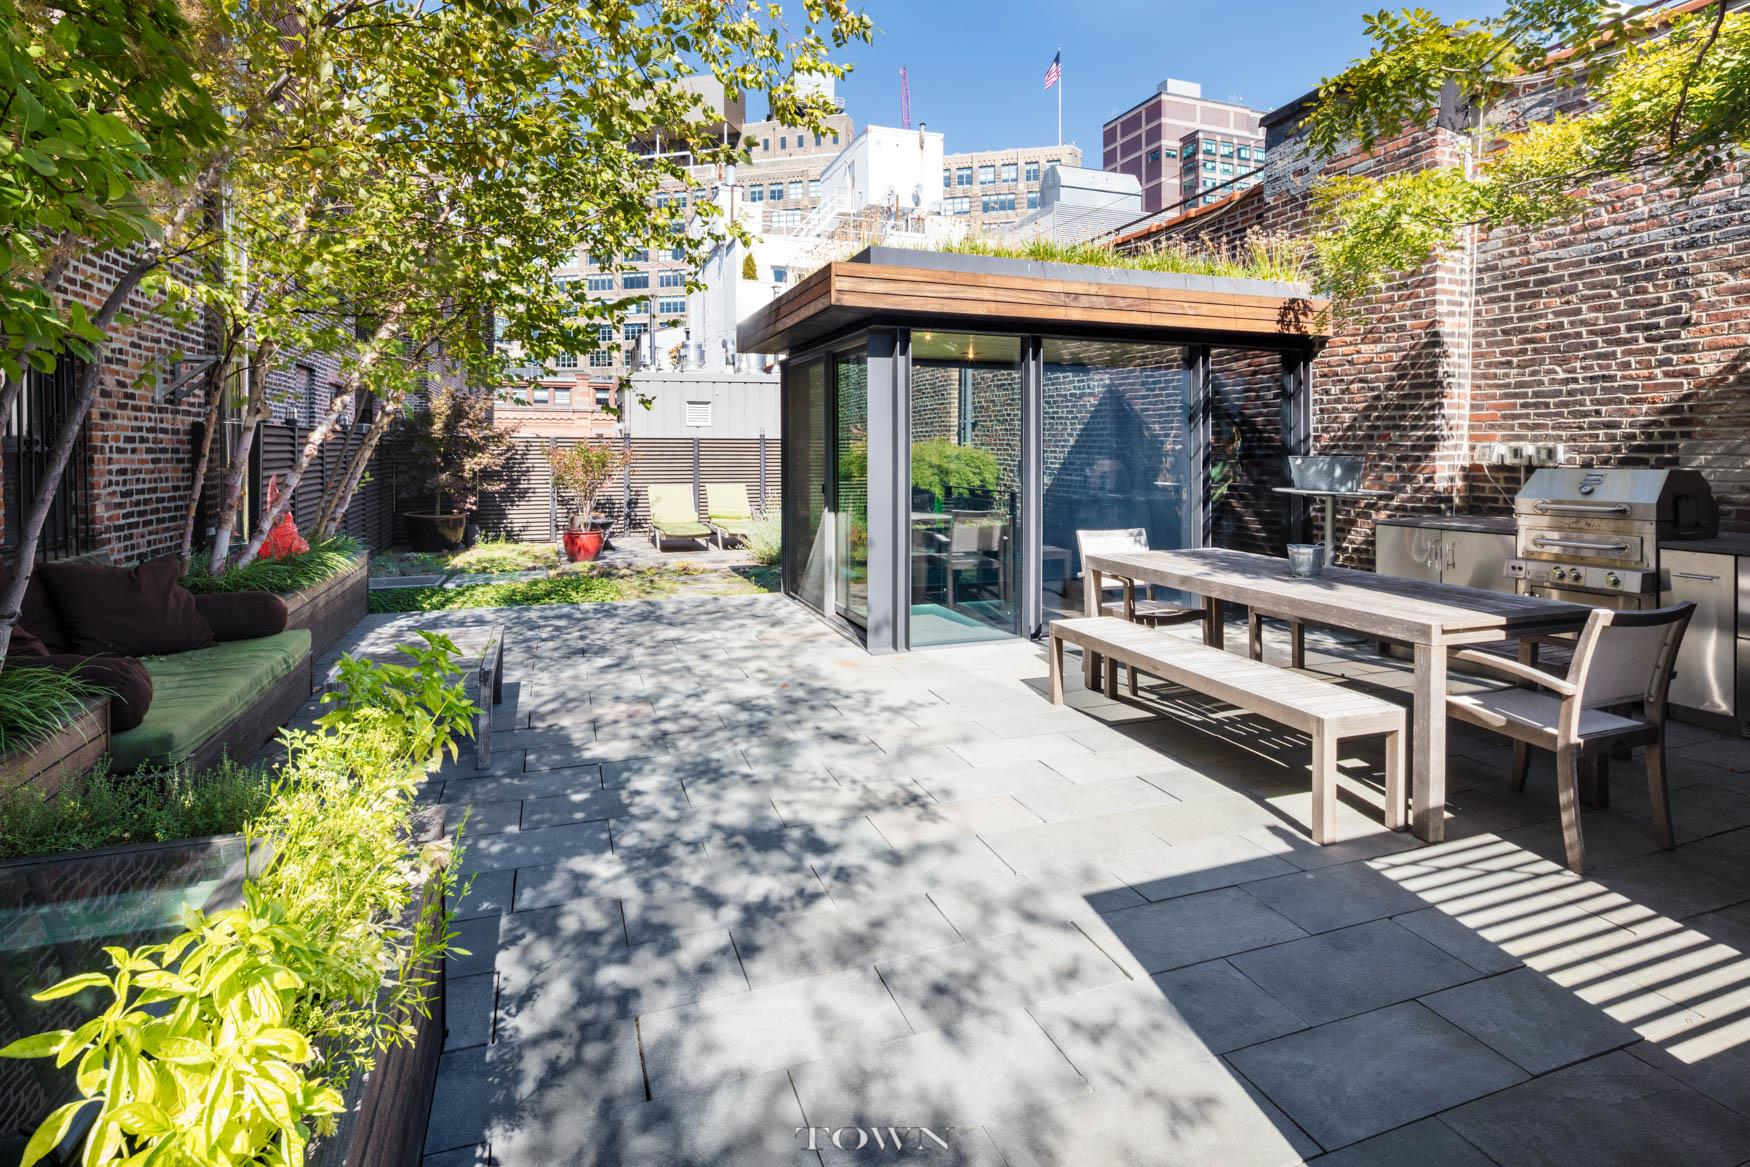 Co-op for Sale at 34 Laight Street, #ph 34 Laight Street New York, New York 10013 United States